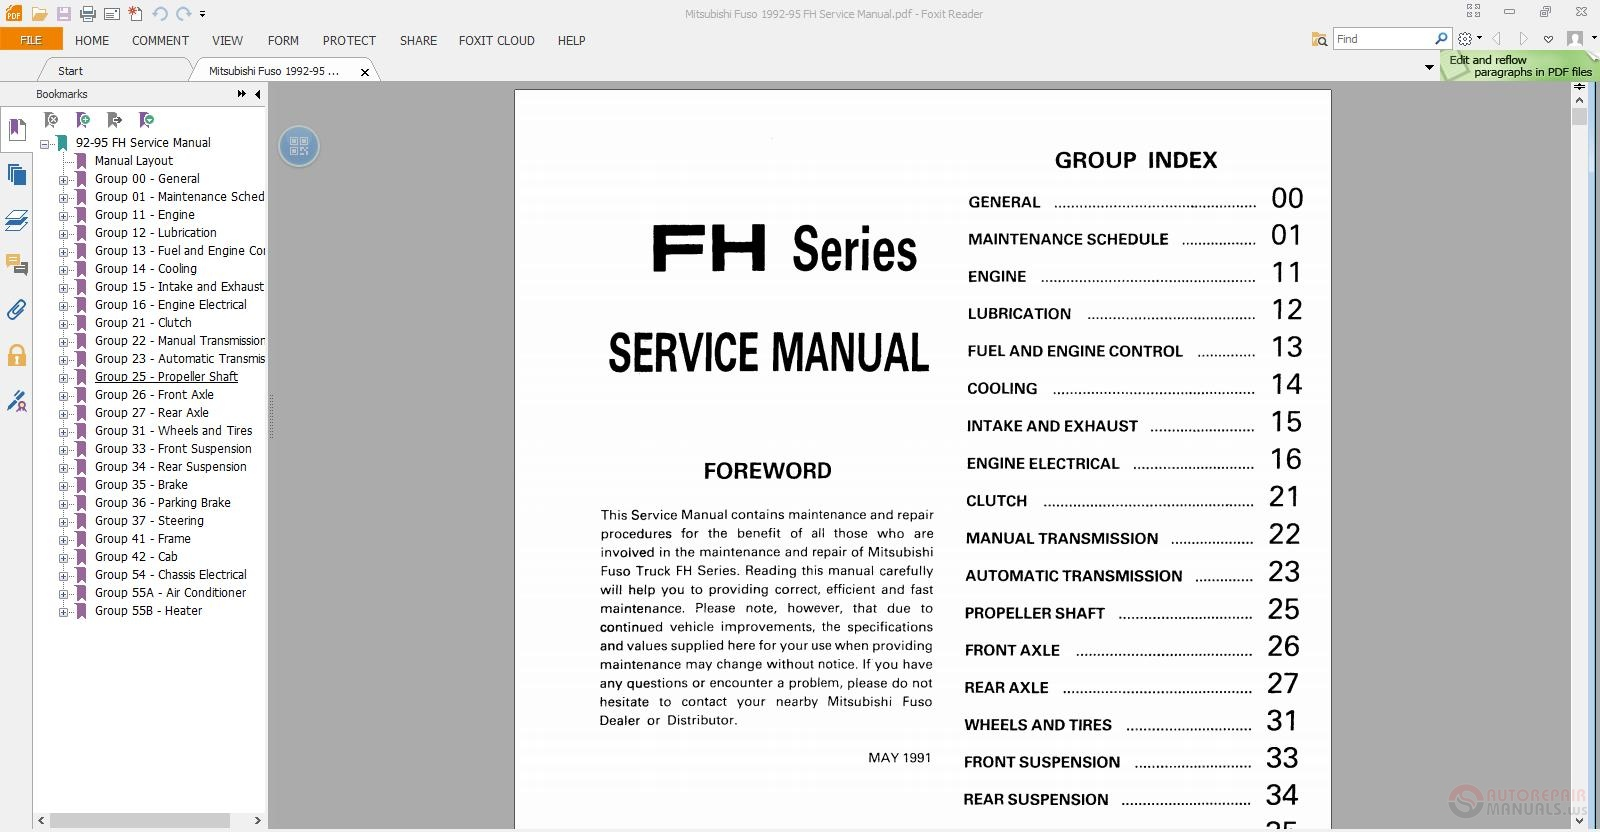 Mitsubishi Fuso 1992 95 Fh Service Manual on heavy truck wiring diagrams